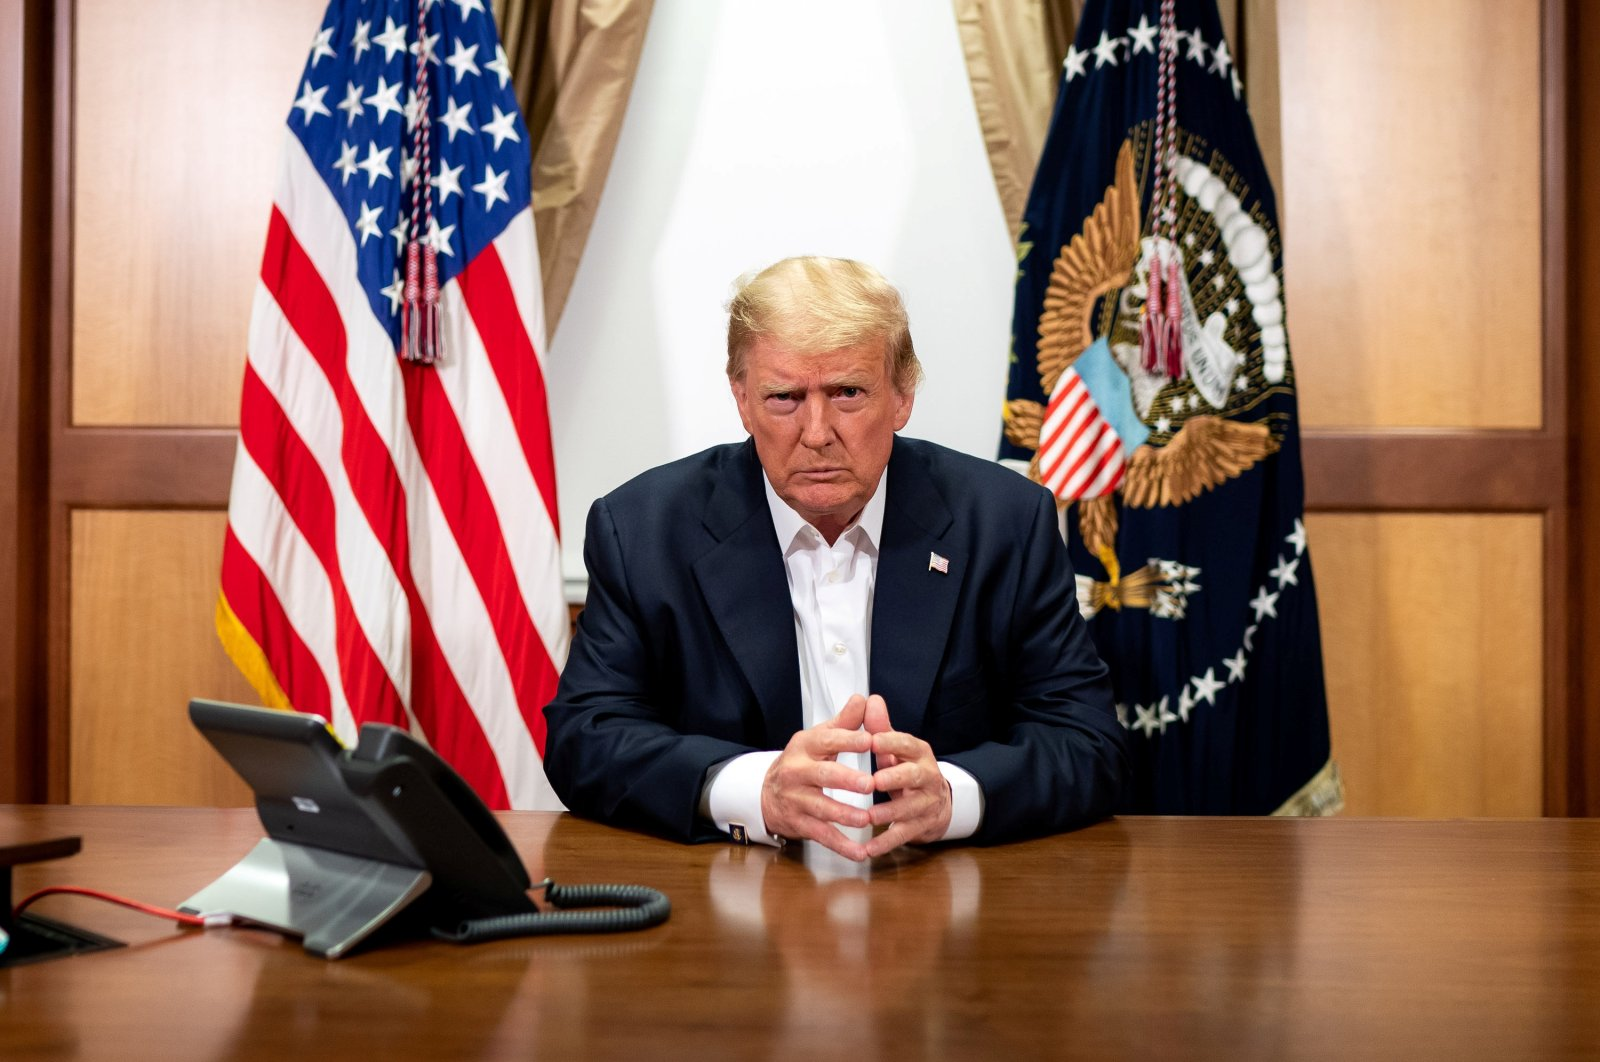 U.S. President Donald Trump participates in a phone call with Vice President Mike Pence, Secretary of State Mike Pompeo, and Chairman of the Joint Chiefs of Staff Gen. Mark Milley on Oct. 4, 2020. (Reuters Photo)